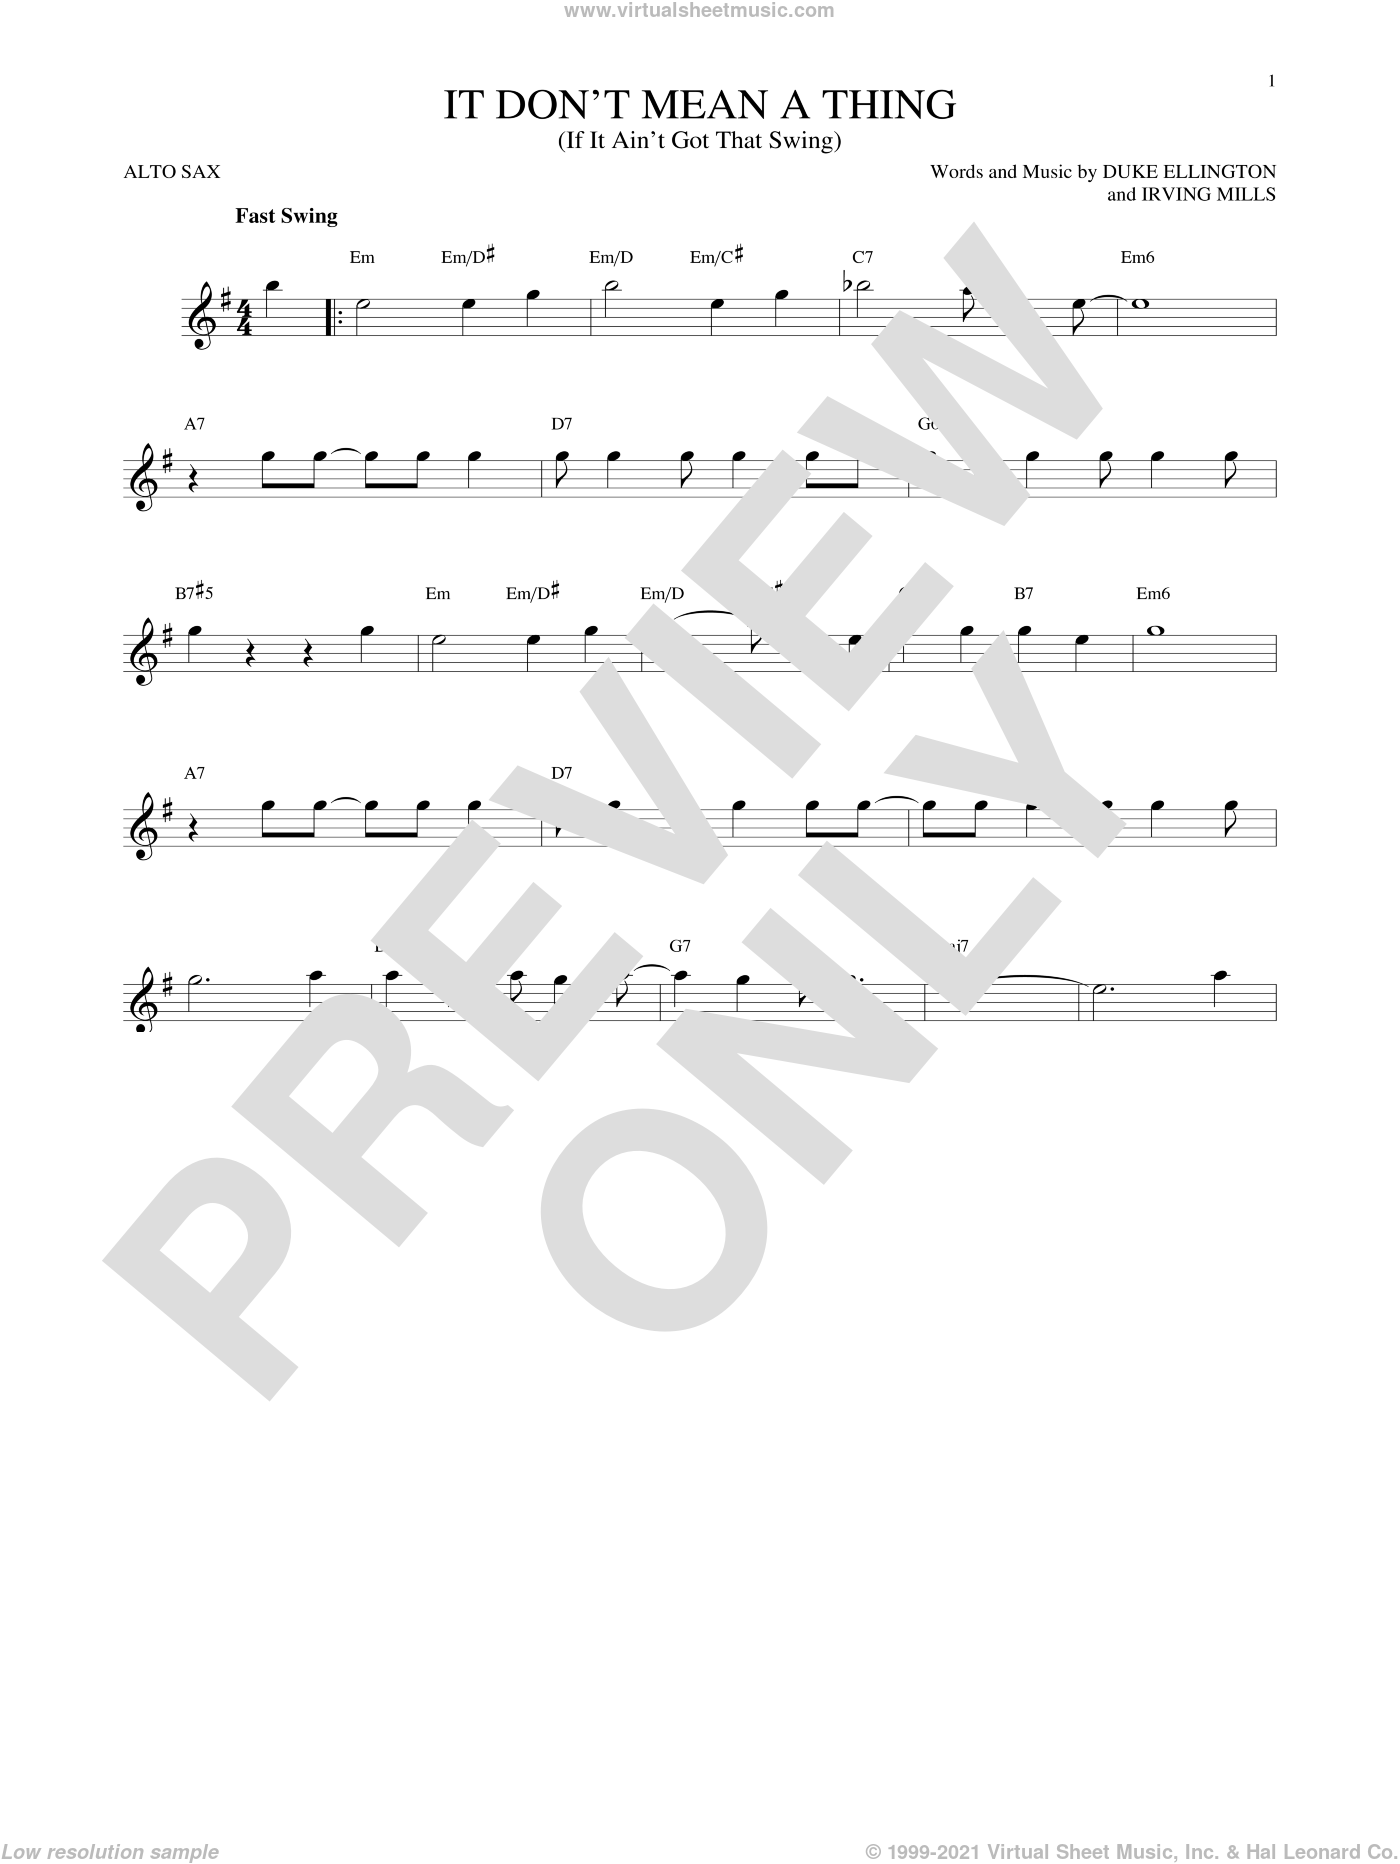 It Don't Mean A Thing (If It Ain't Got That Swing) sheet music for alto saxophone solo by Irving Mills and Duke Ellington. Score Image Preview.